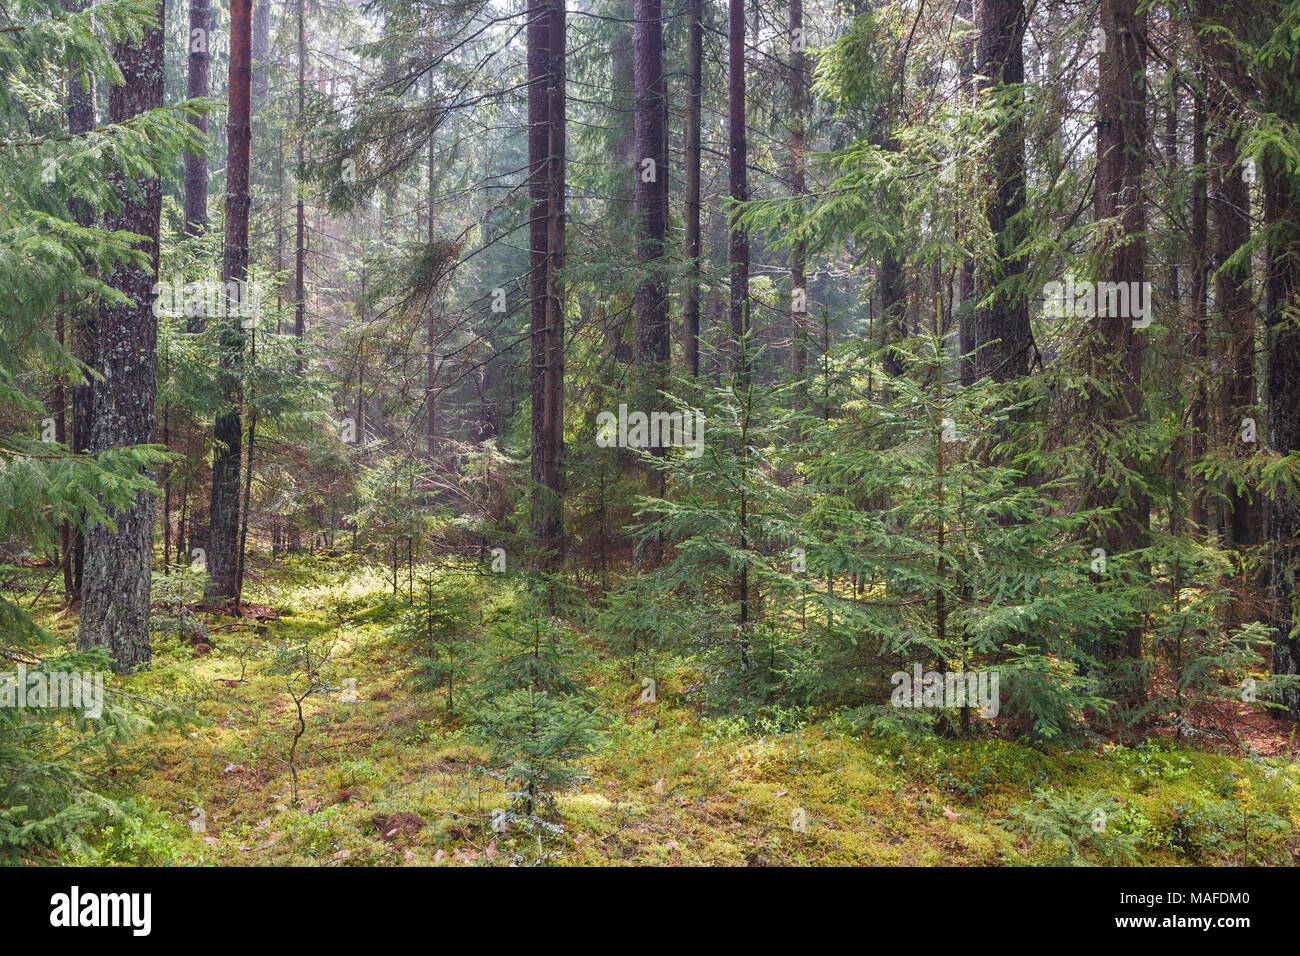 Pine tree stand in springtime with juvenile spruces in foreground, Bialowieza Forest, Poland, Europe - Stock Image